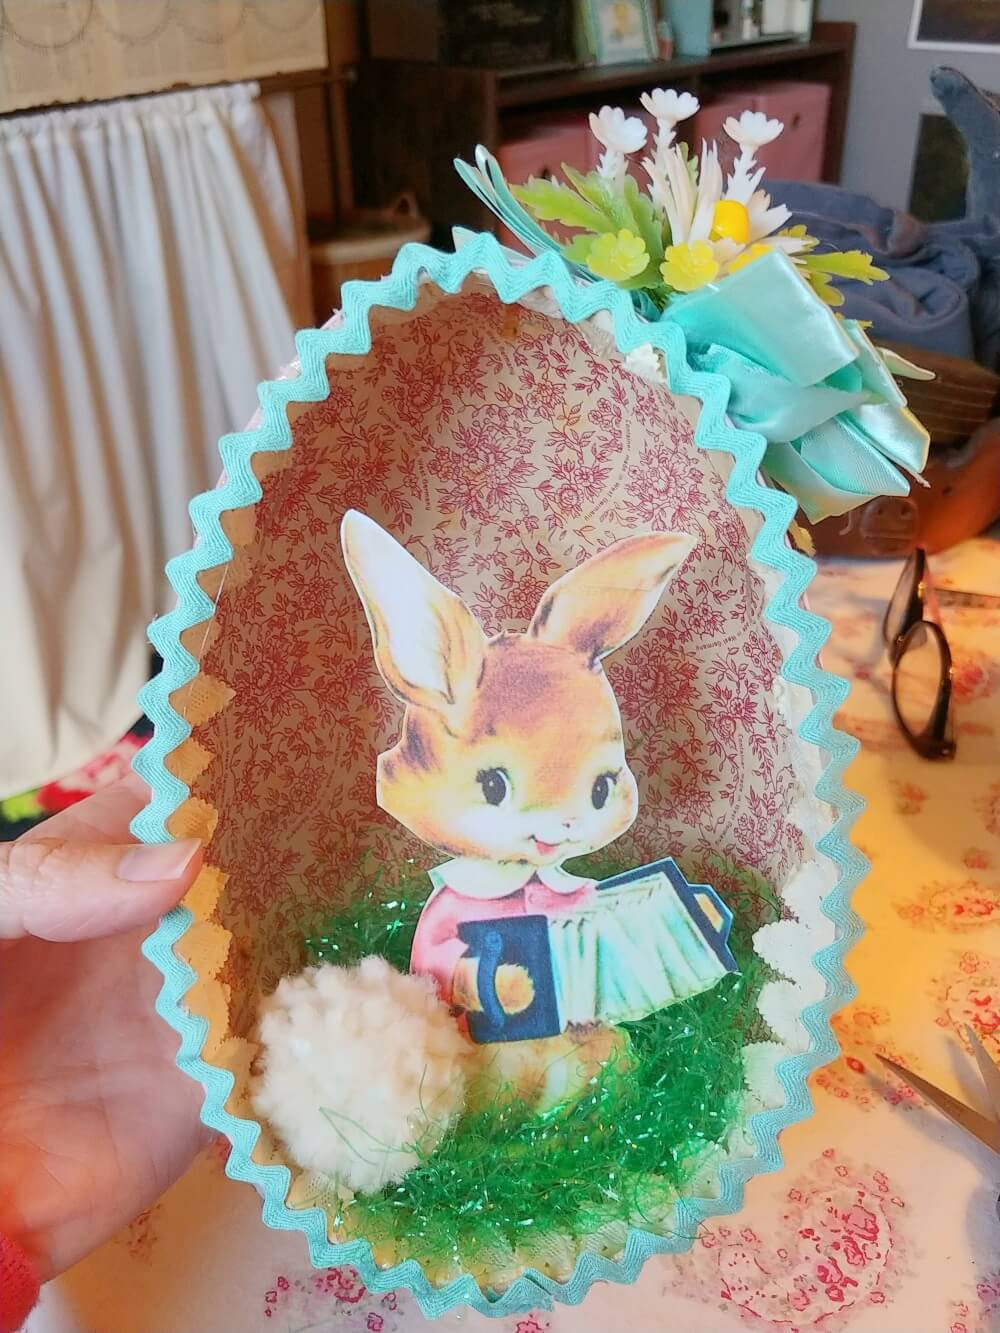 Upcycled Vintage Easter Egg Diorama